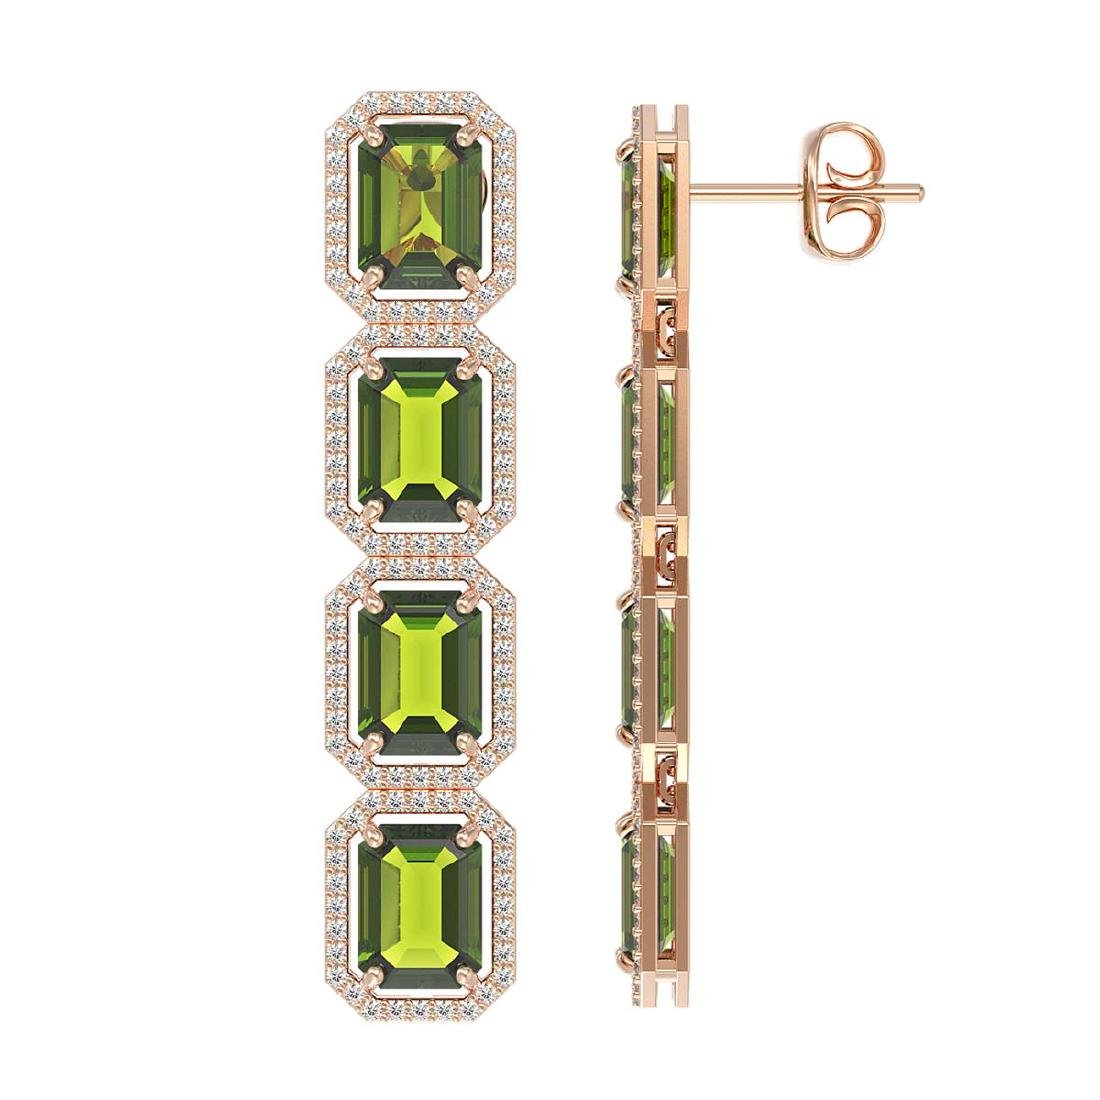 19.44 CTW Tourmaline & Diamond Halo Earrings 10K Rose - 2